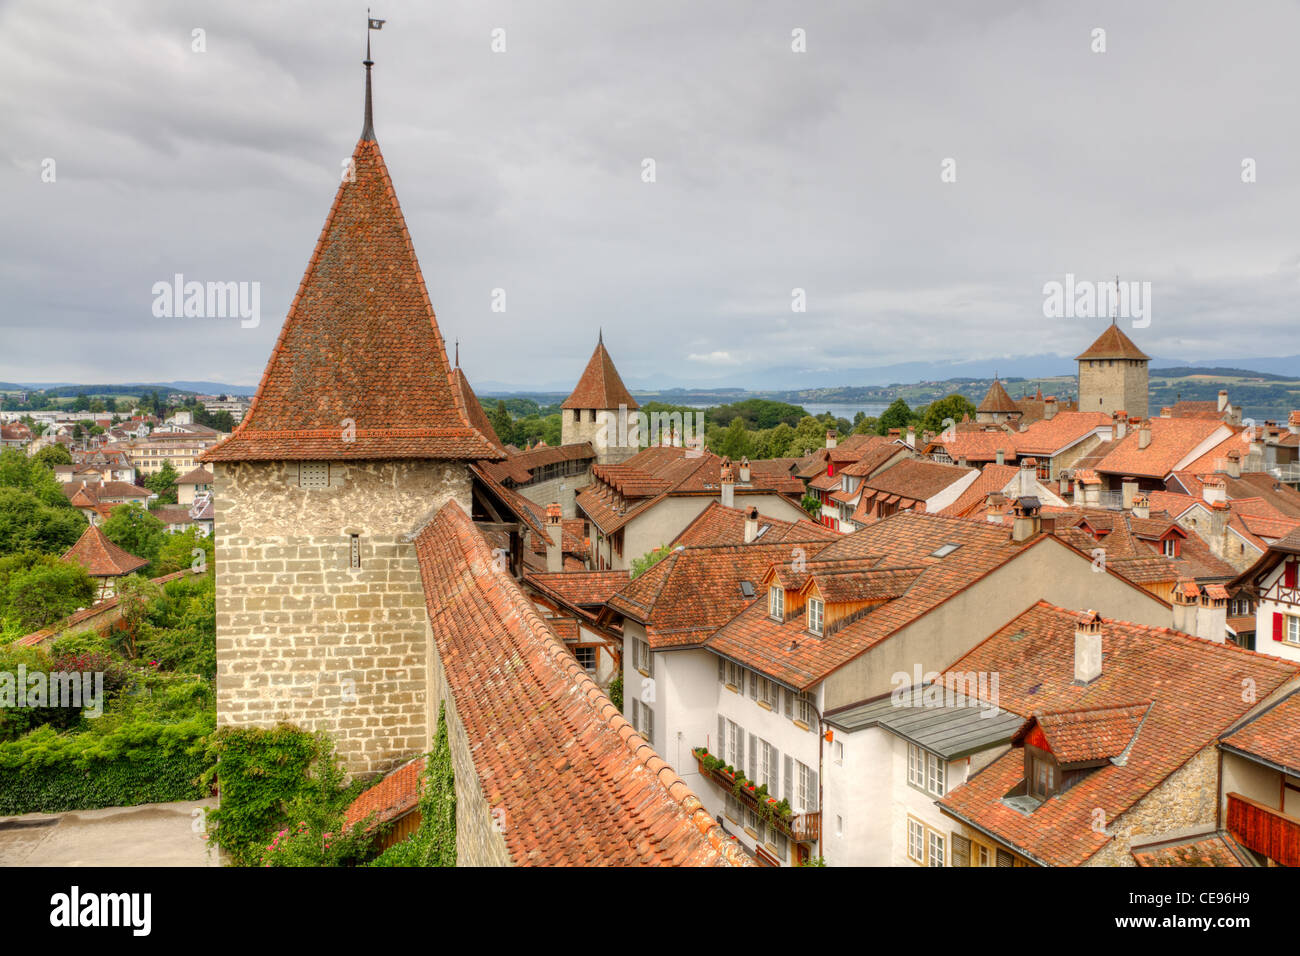 Murten old town with narrow lanes city wall, watch tower and clay shingle roofs, Switzerland - Stock Image